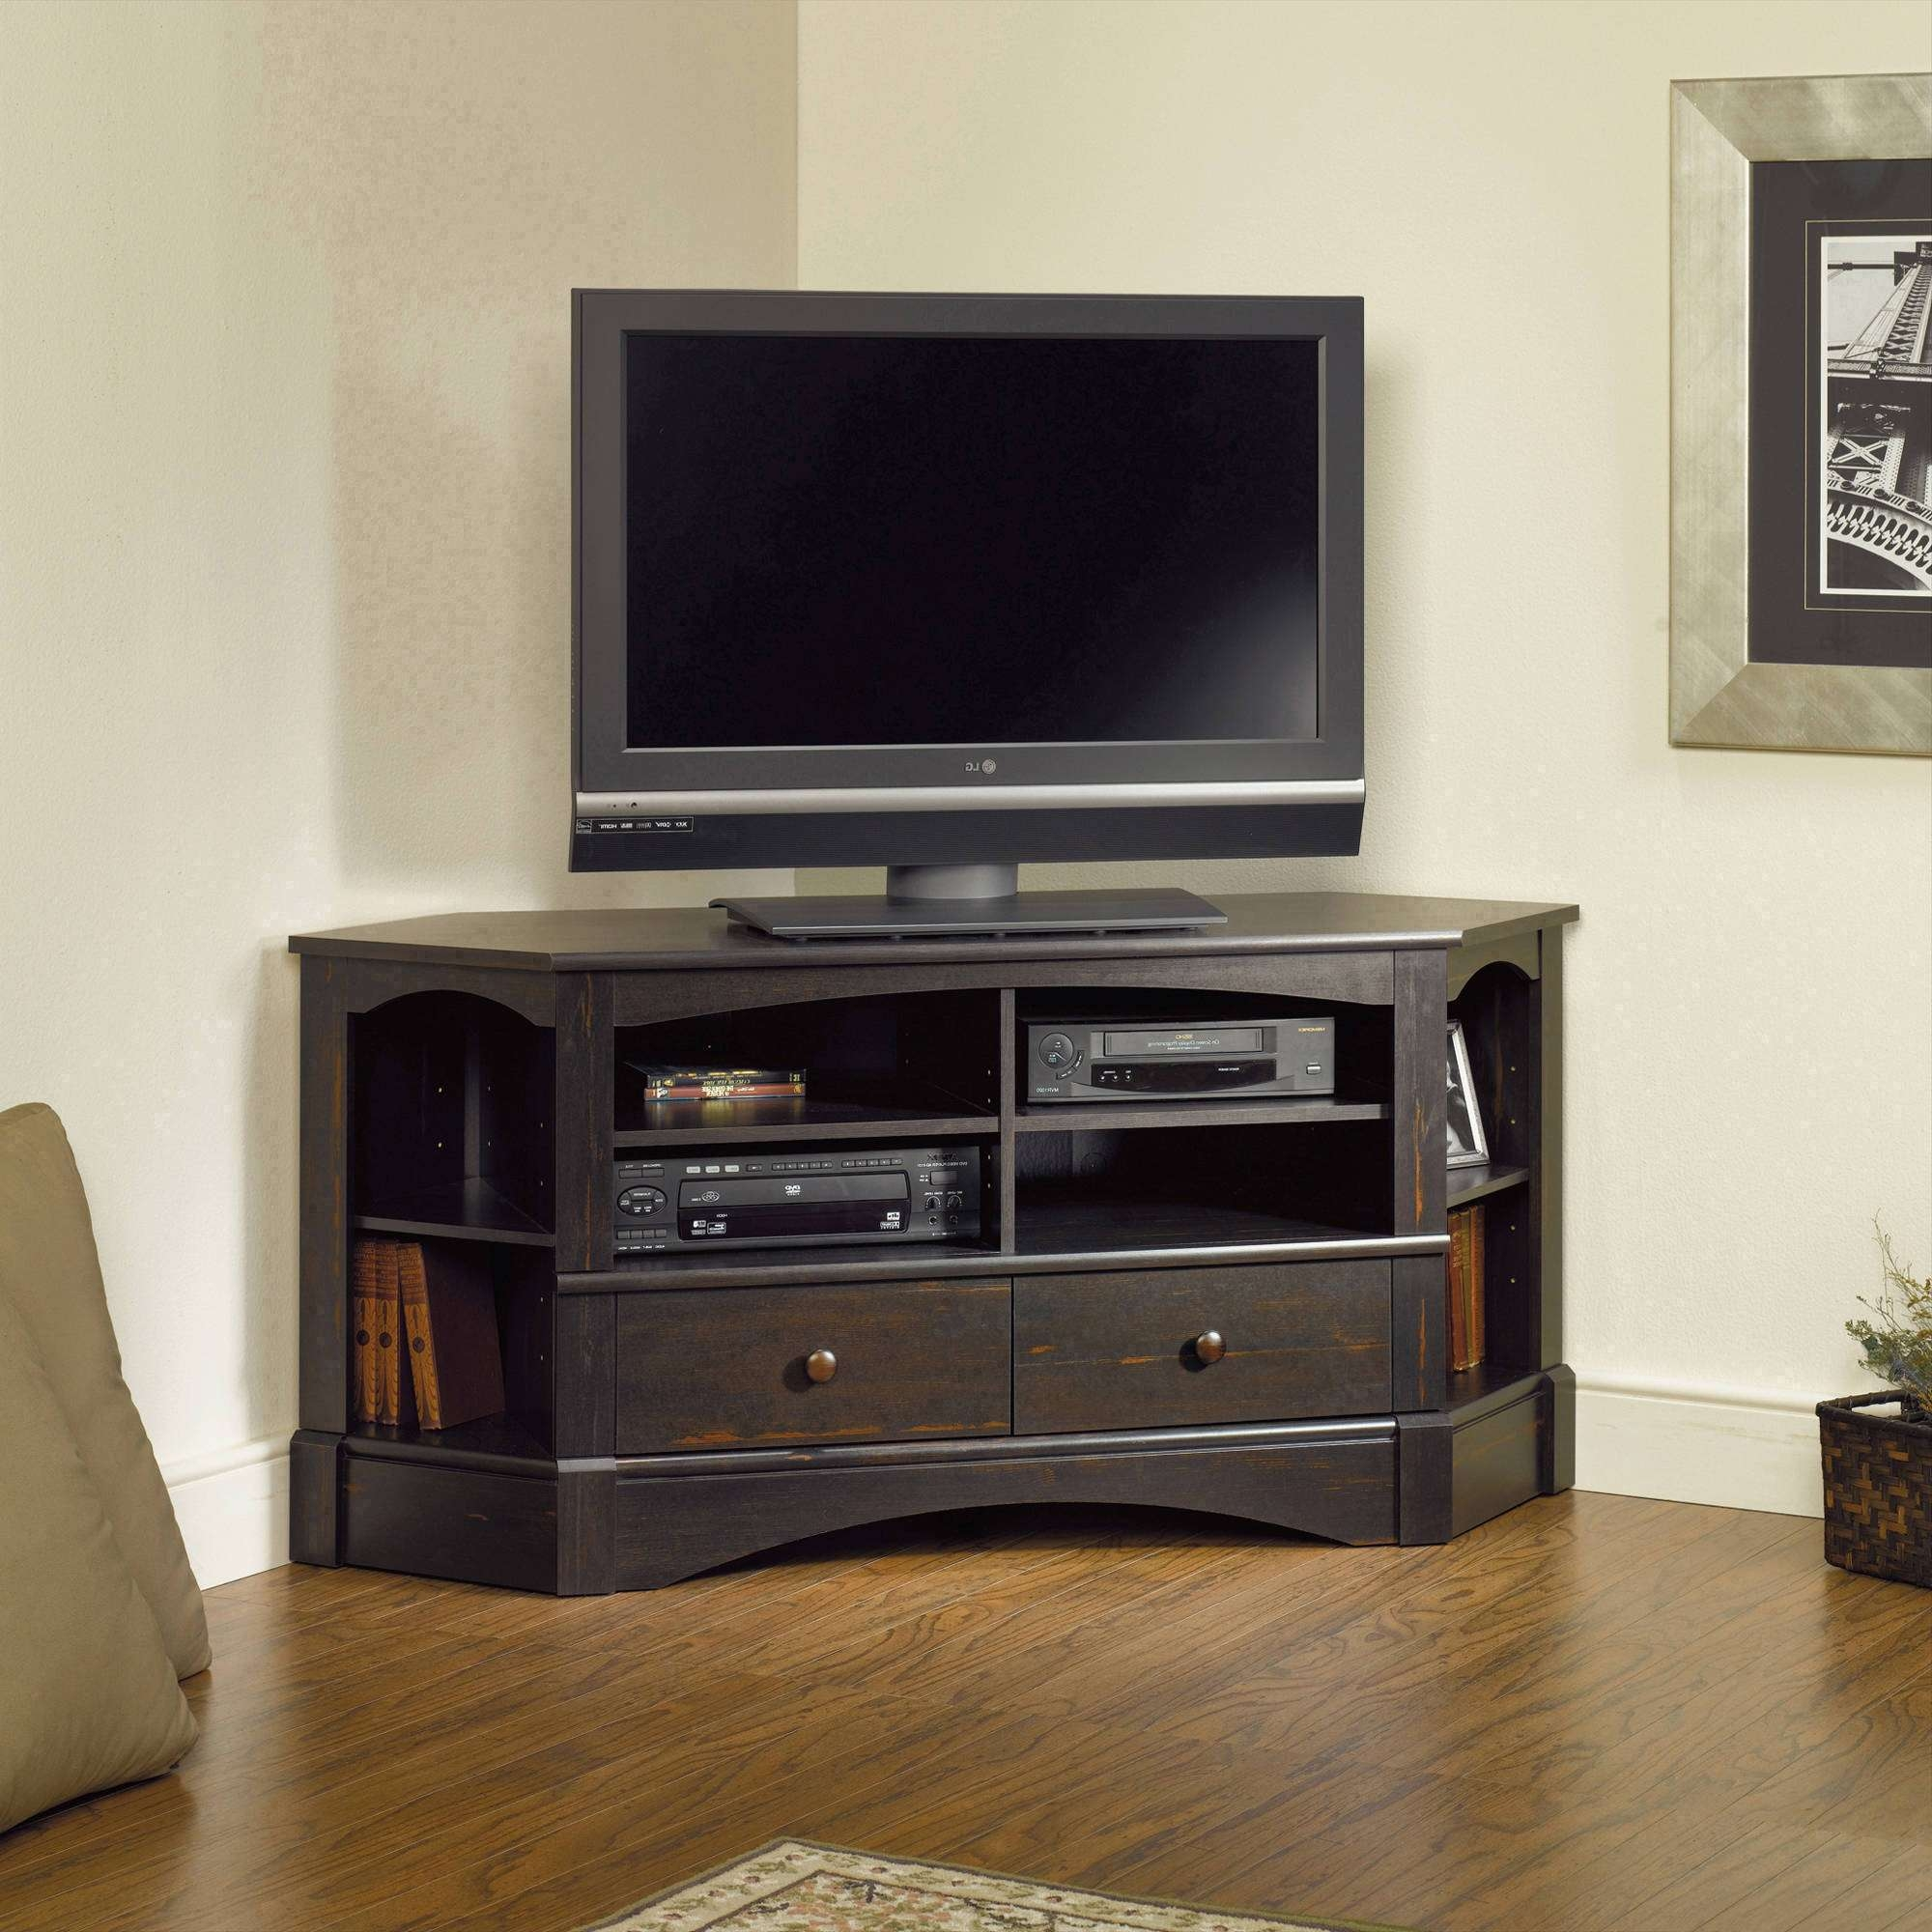 Perfect Corner Tv Stand For 55 Inch Flat Screen 15 On Home Inside 55 Inch Corner Tv Stands (View 20 of 20)